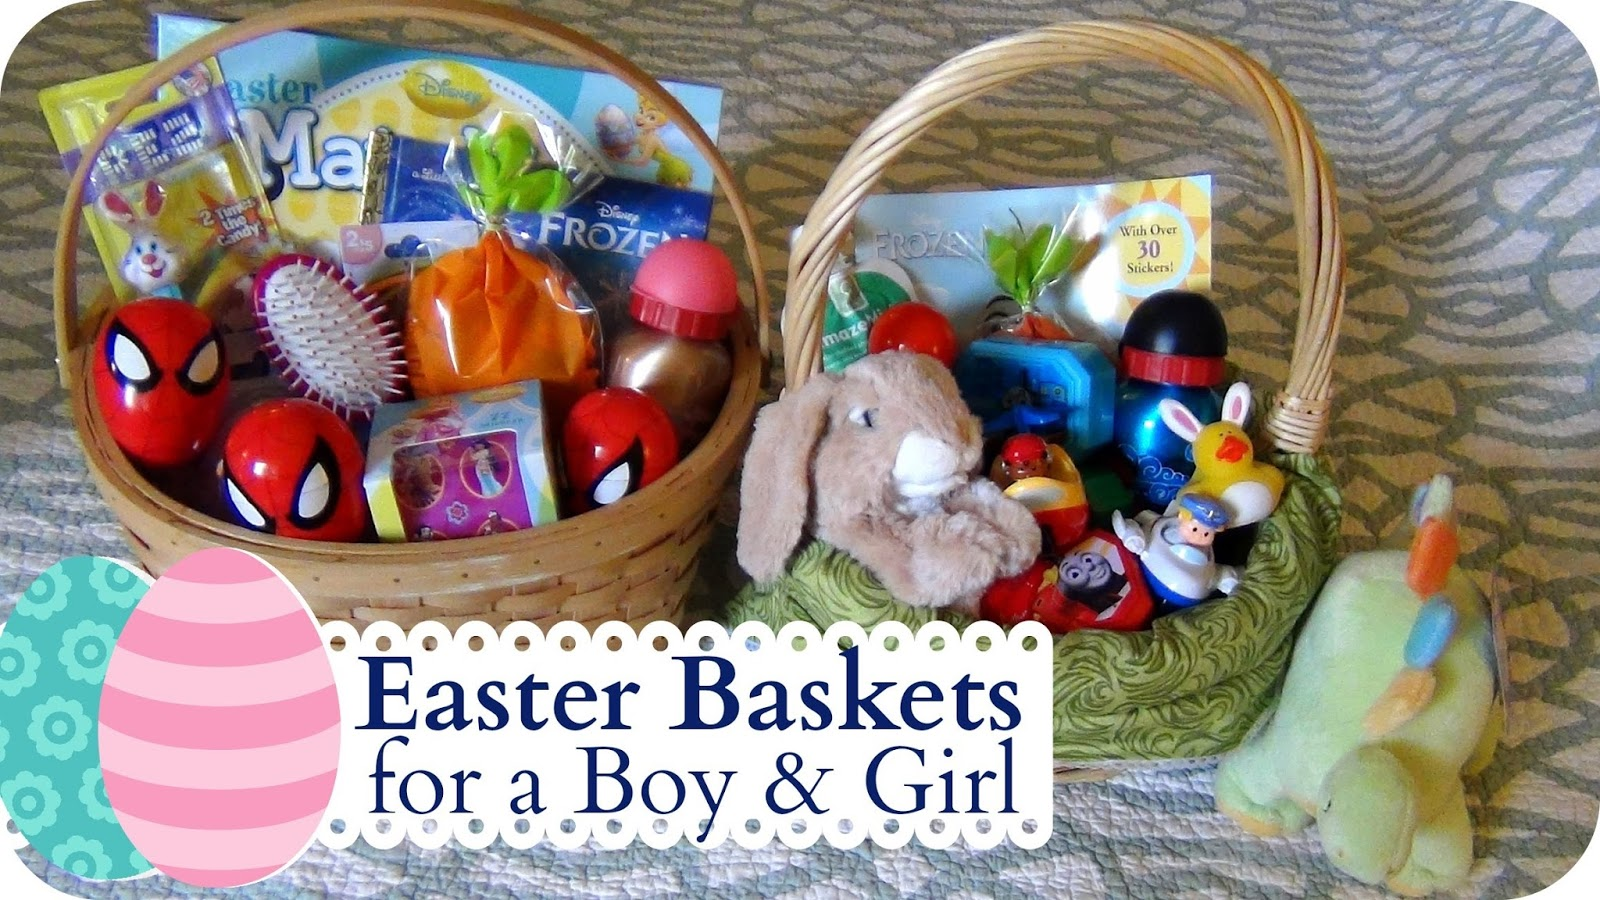 Jefferson co library easter baskets give away for easter we are giving away a boy and a girl easter basket to a child between the age of 0 12 years old negle Gallery